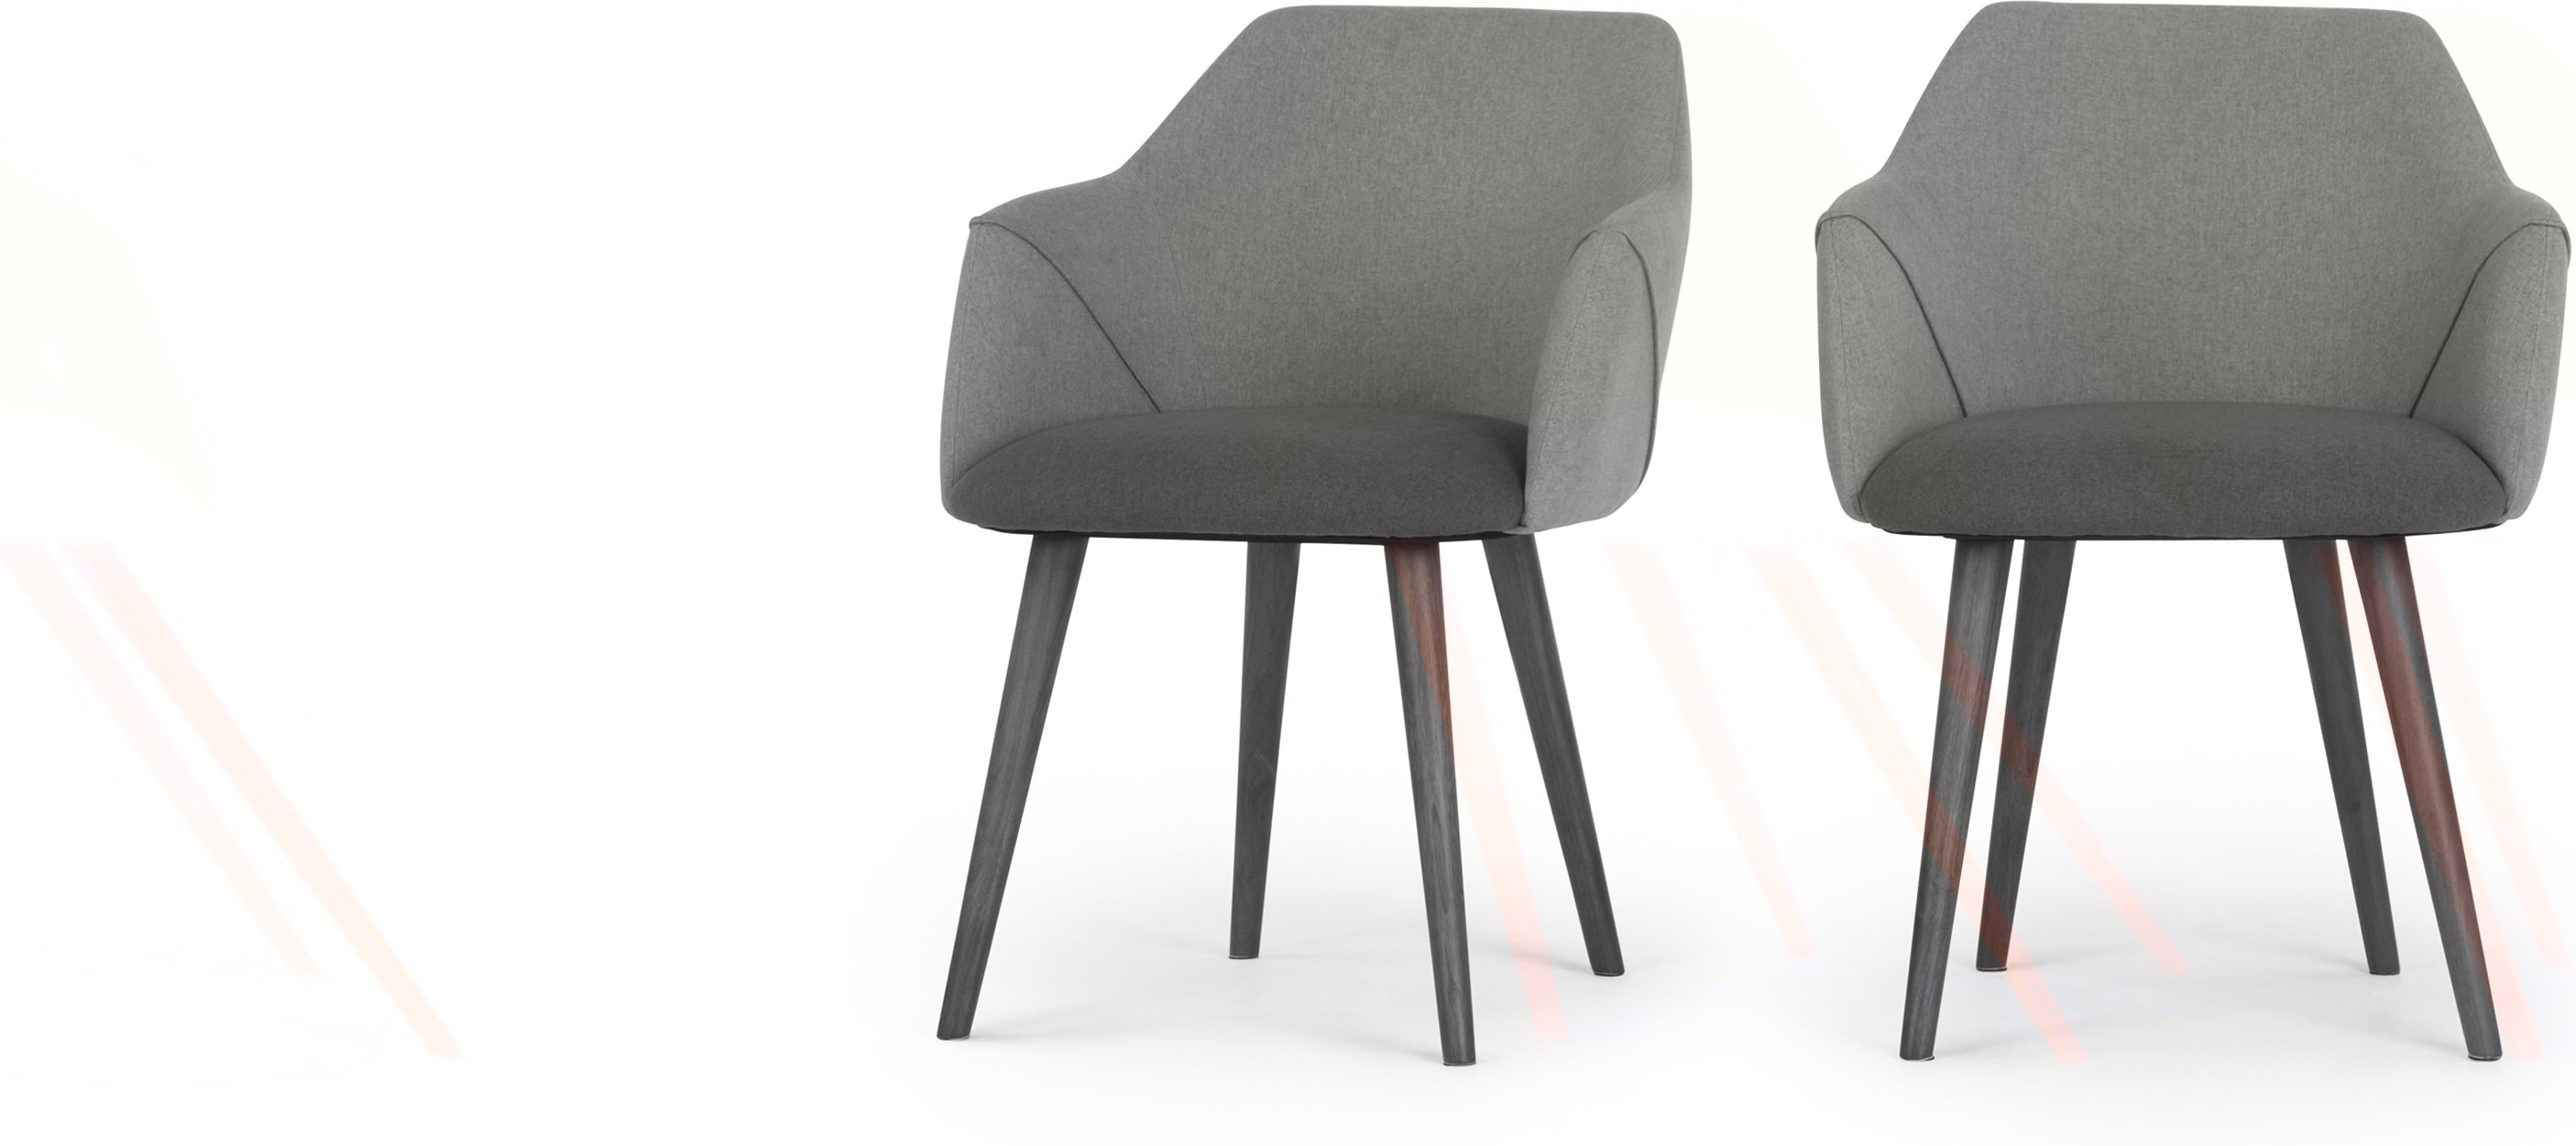 2 x Lule High Back Carver Dining Chairs Marl and Hail Grey With Walnut Legs